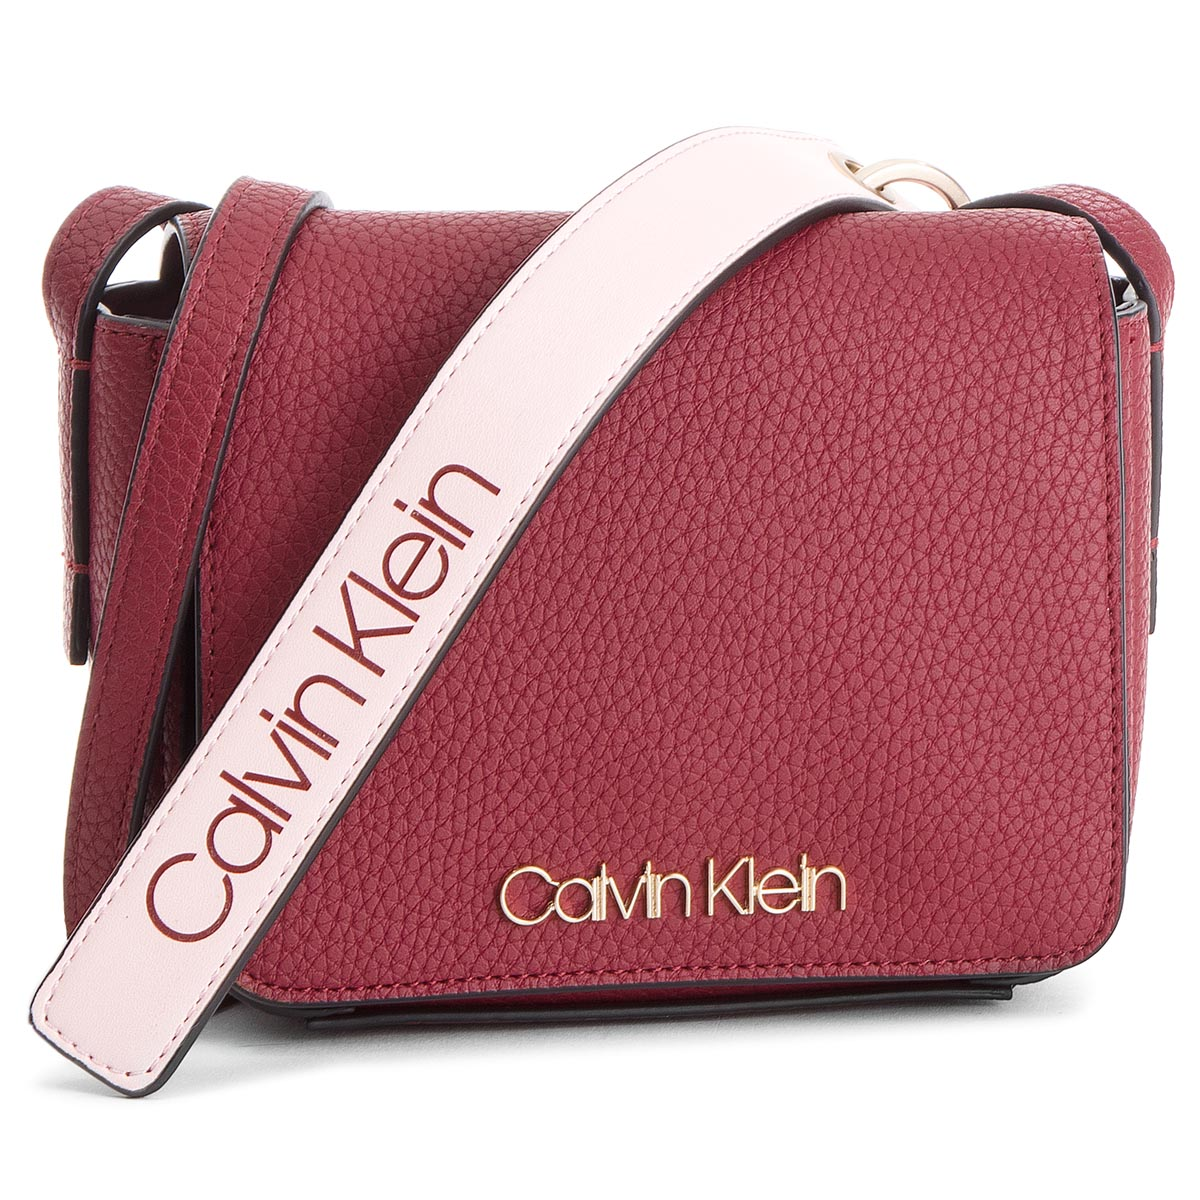 Geantă CALVIN KLEIN - Ck Base Small Crossbody K60K604425 628